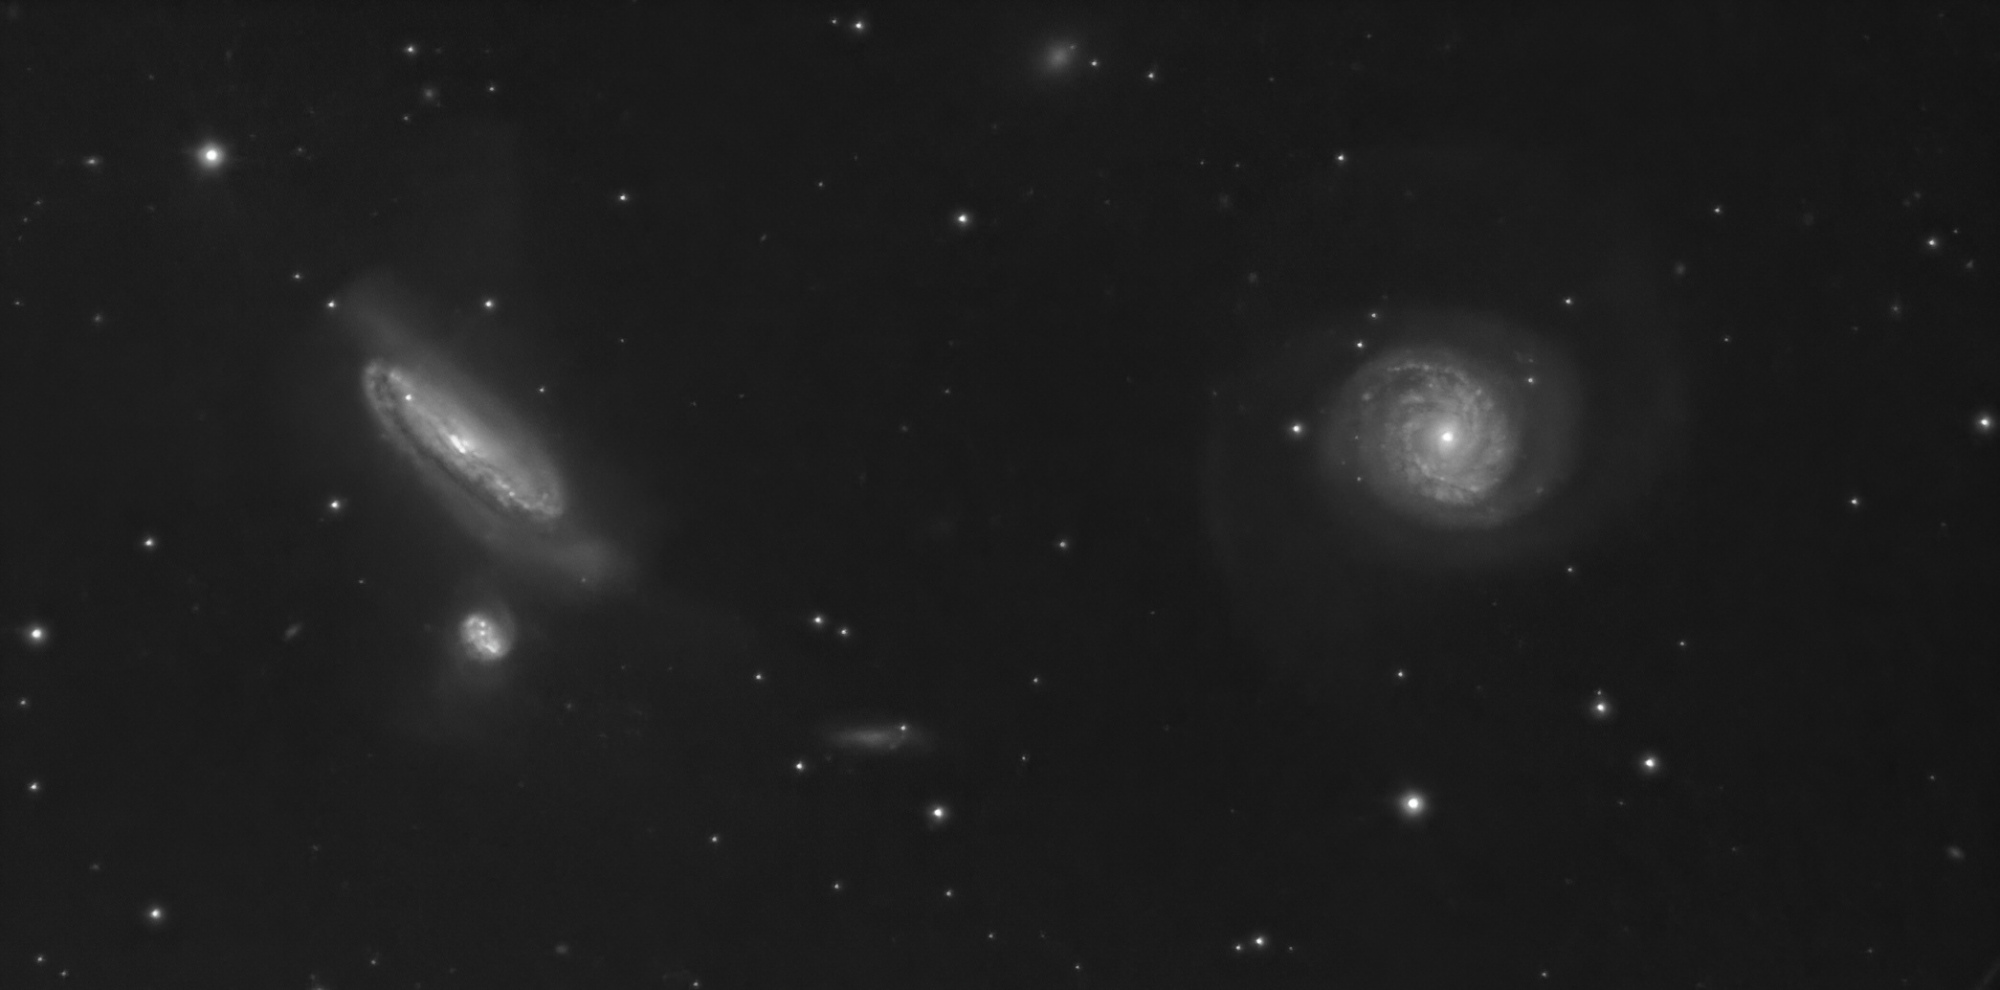 NGC7771-denoise-low-light.thumb.jpeg.e927e62da7d2f99007c22d8f2a6c0ce0.jpeg